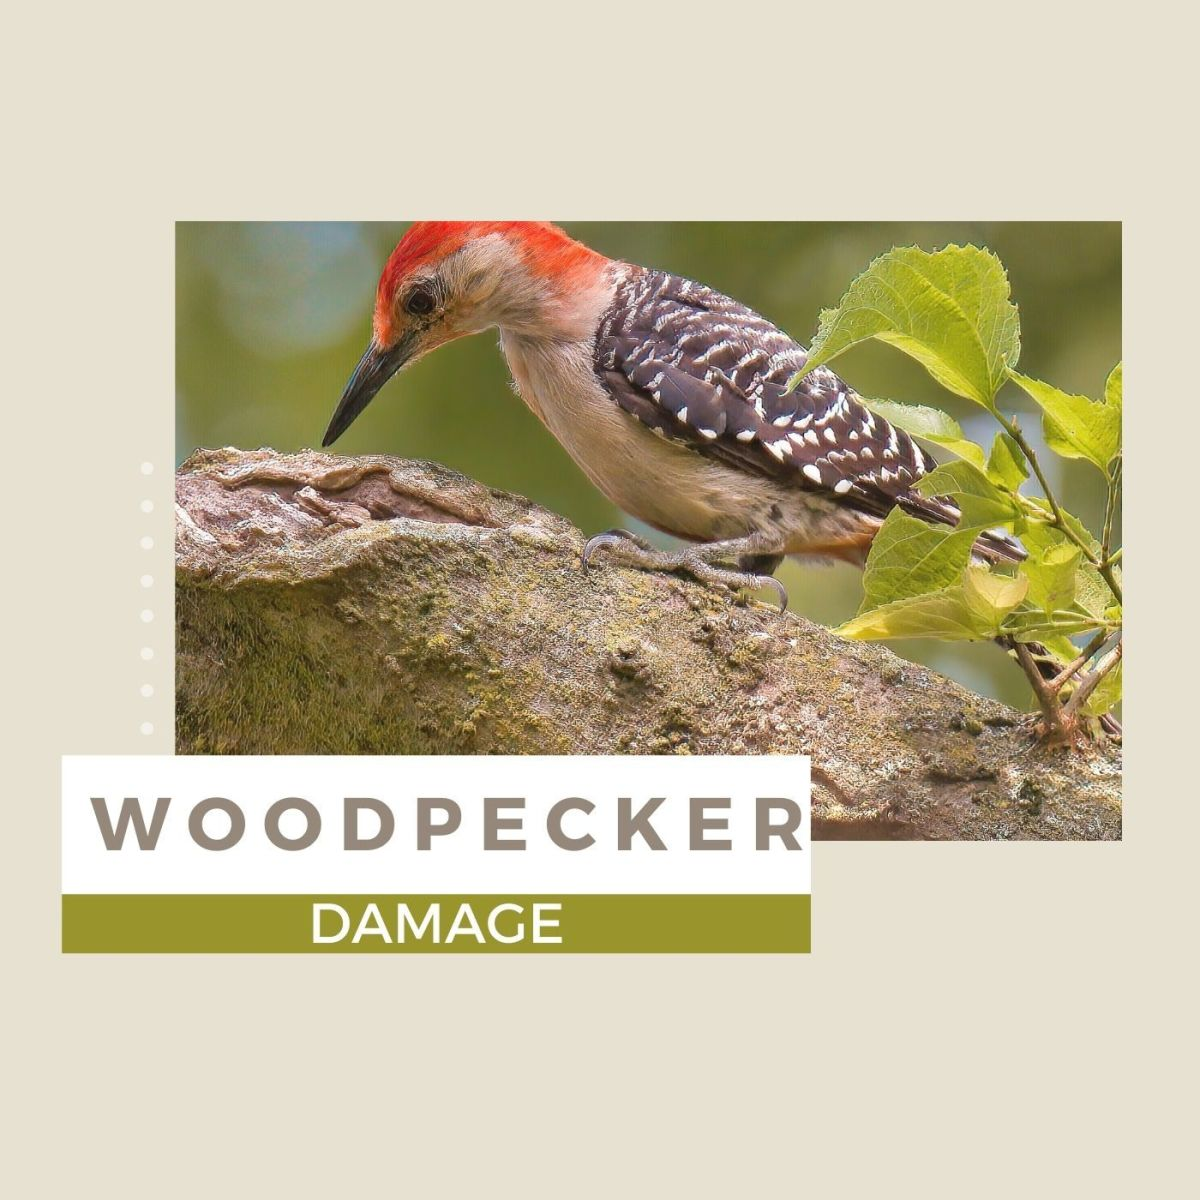 How to Fix and Prevent Woodpecker Damage